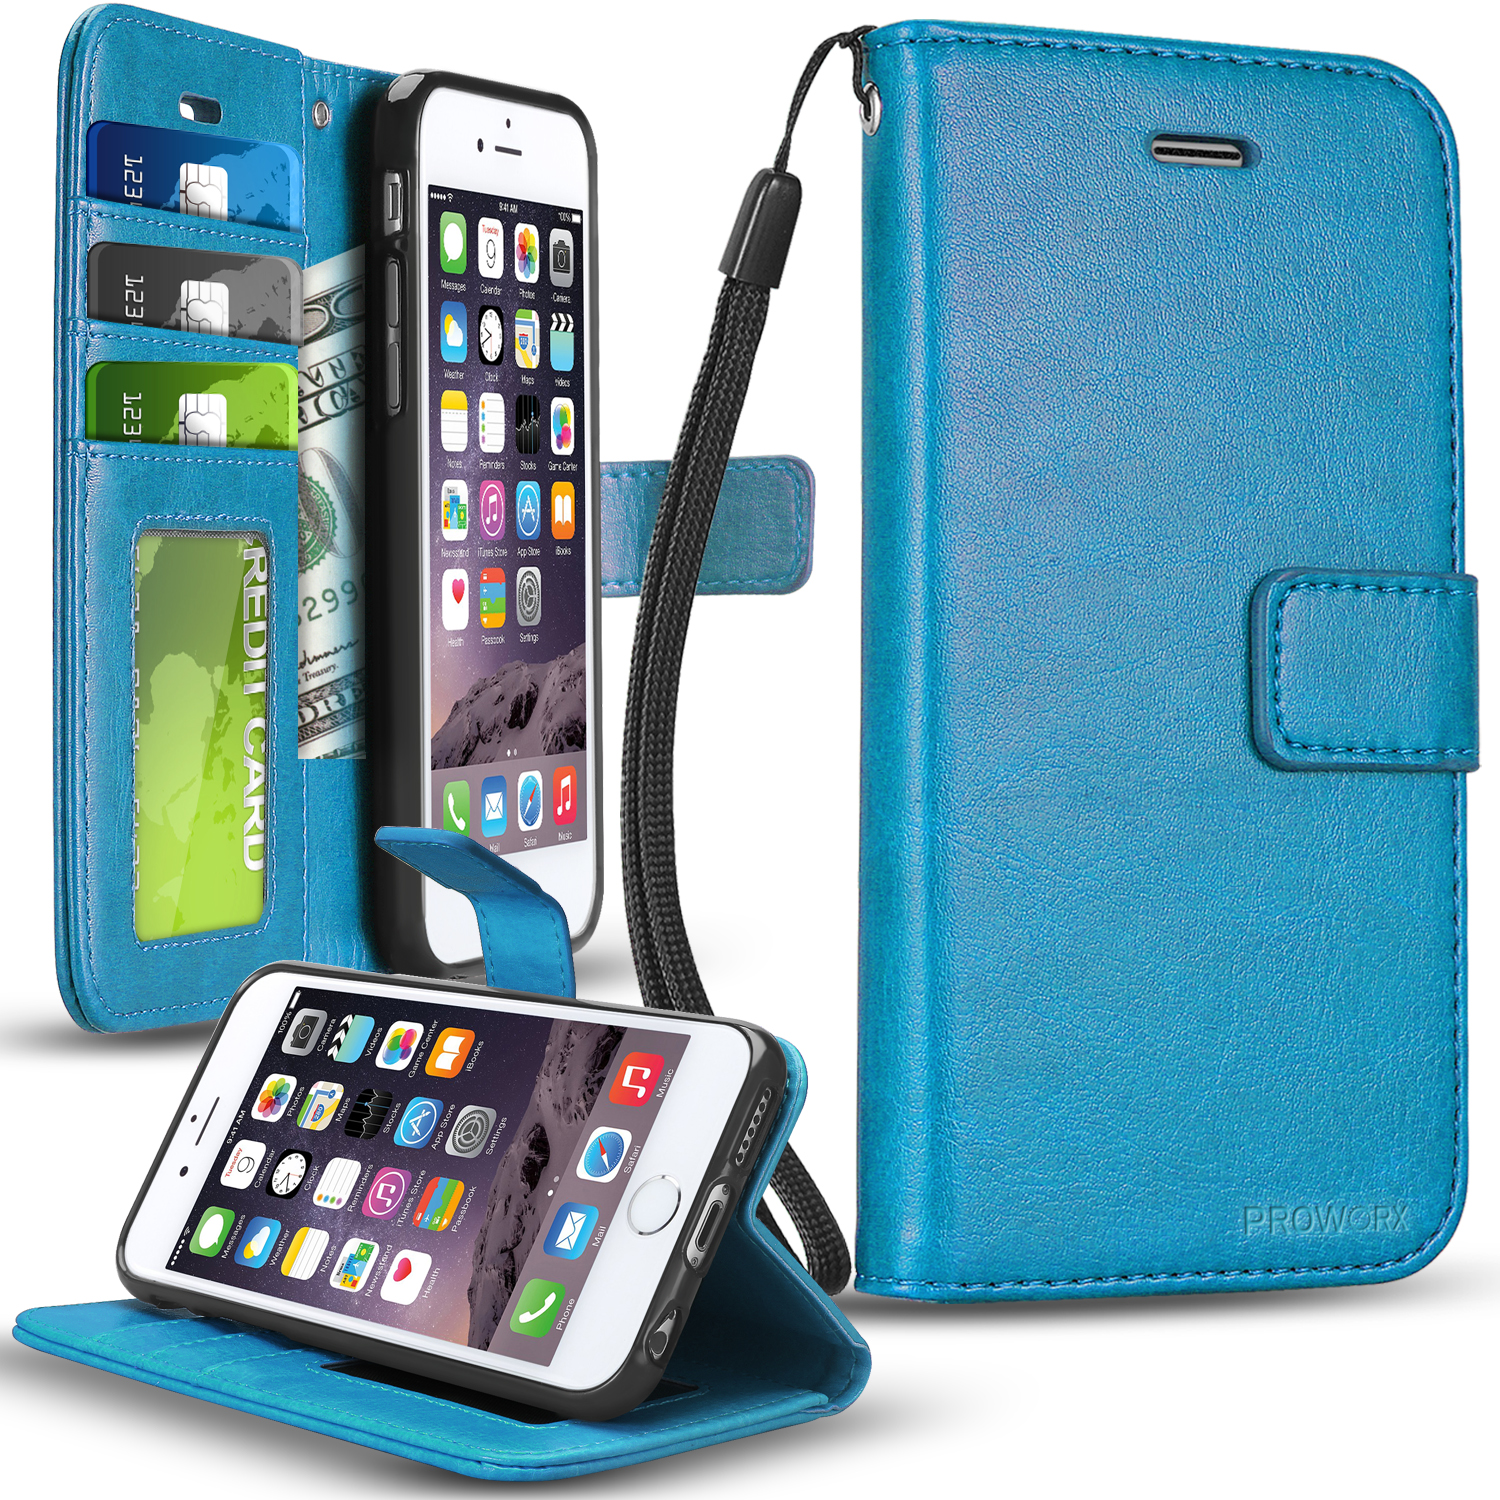 Apple iPhone 6 Plus 6S Plus (5.5) Baby Blue ProWorx Wallet Case Luxury PU Leather Case Cover With Card Slots & Stand